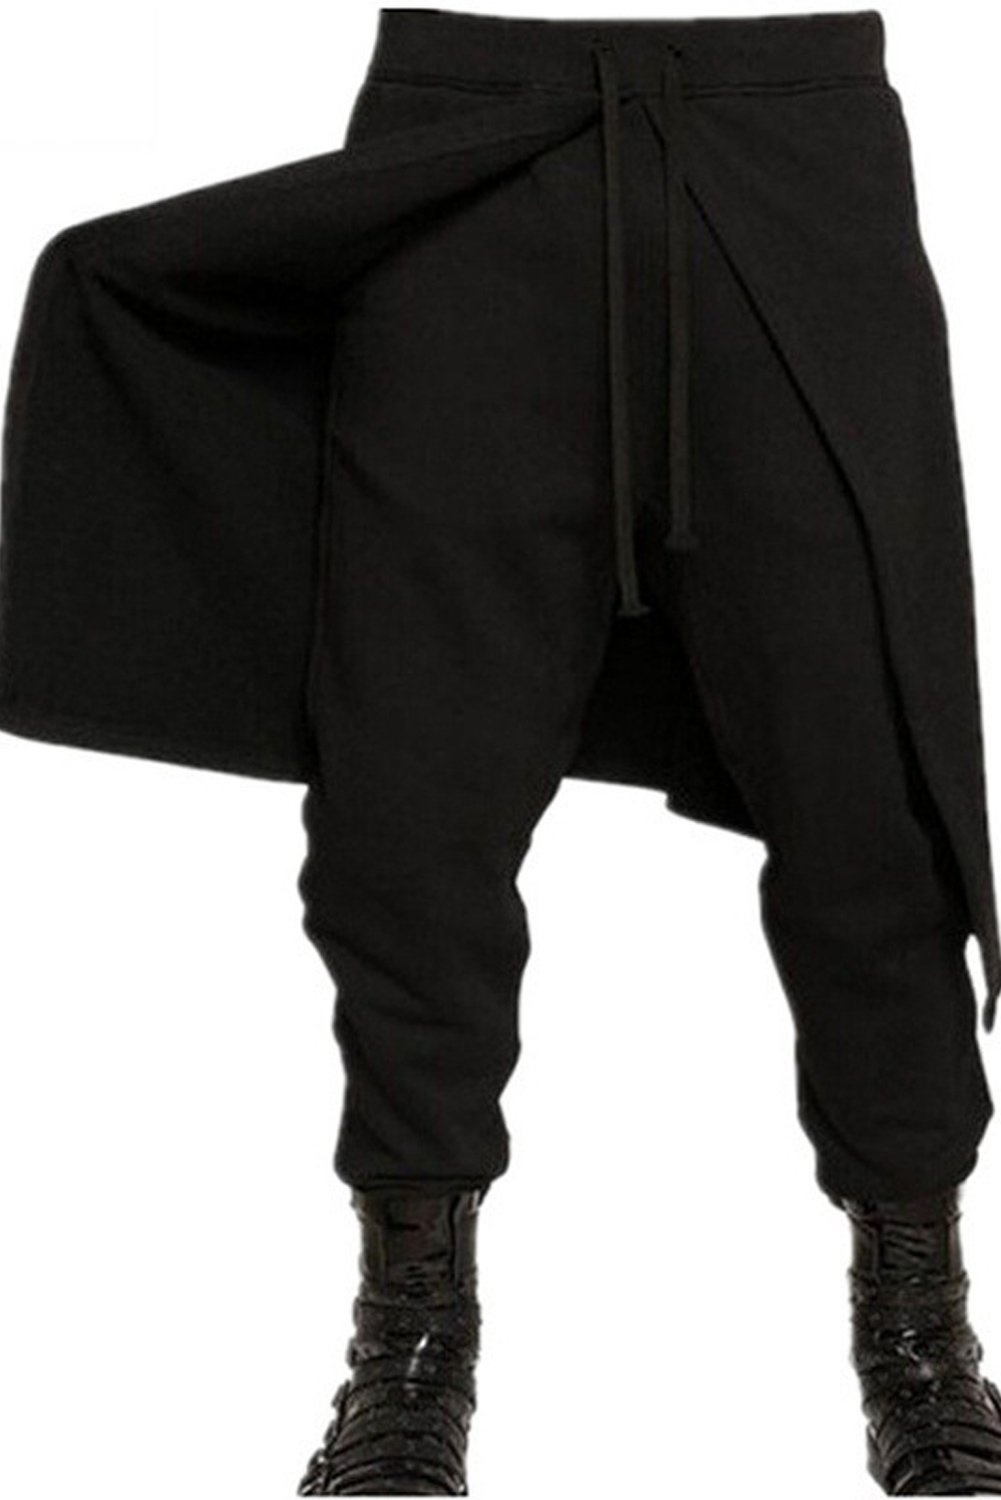 boomtrader Mens Medieval Steampunk Pants Punk Pirate Renaissance Gothic Trousers Costume 4